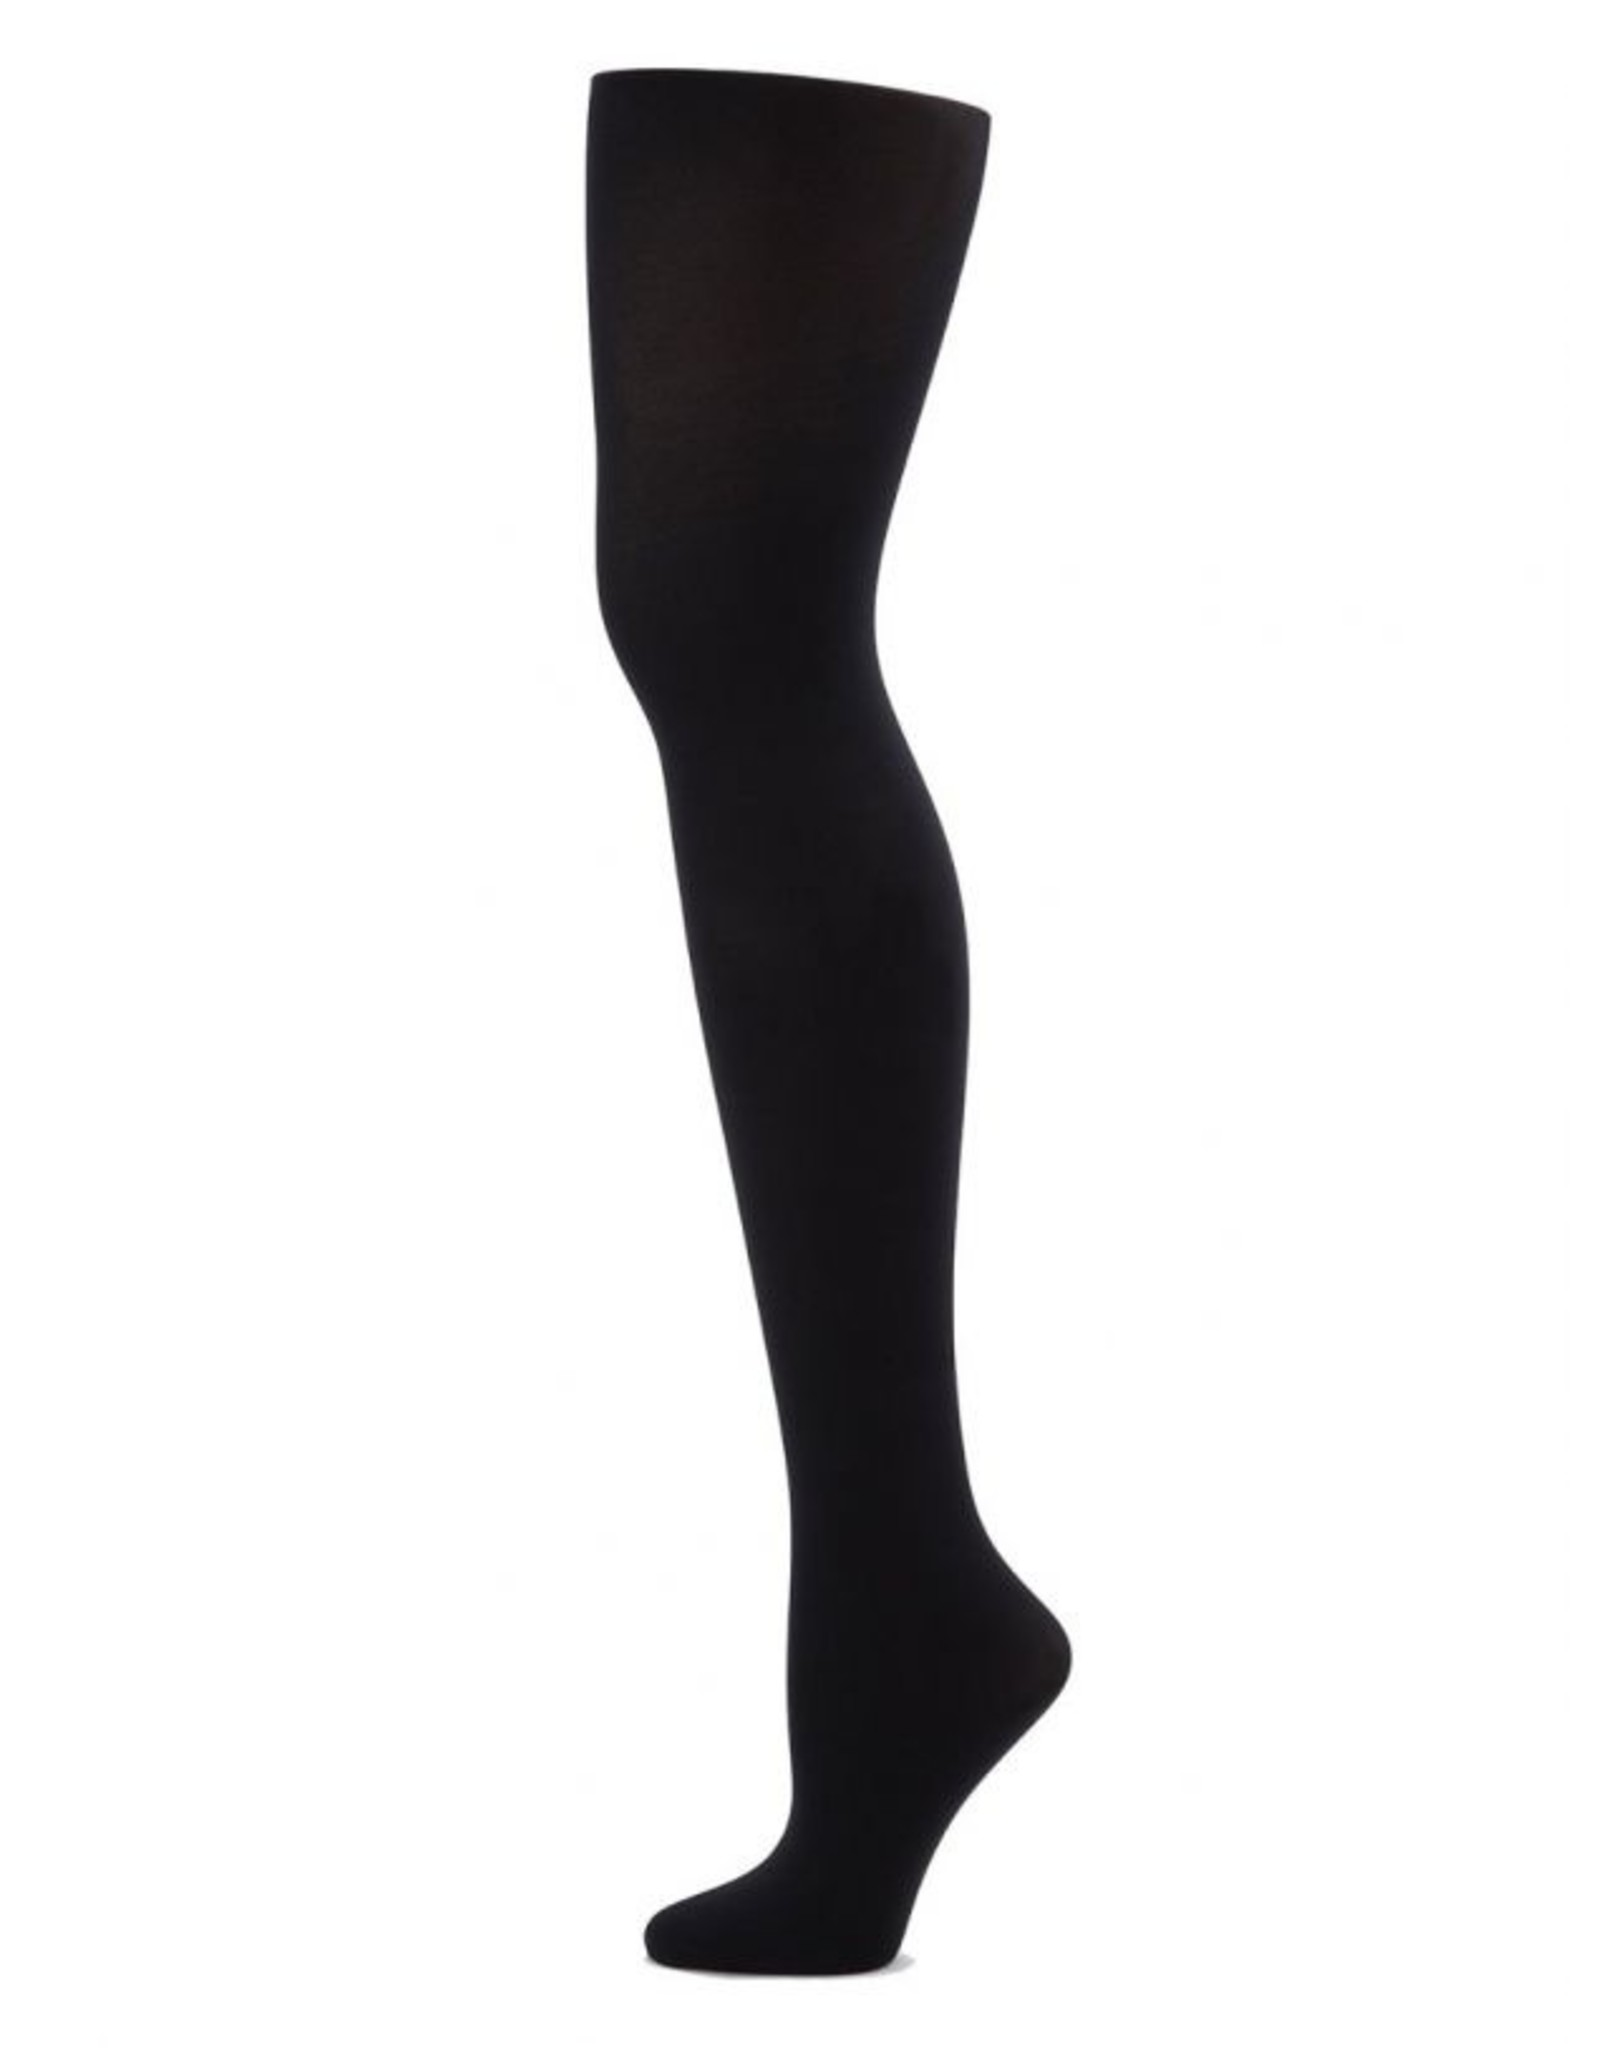 ADULT CAPEZIO ULTRA SOFT FOOTED TIGHTS - 1915